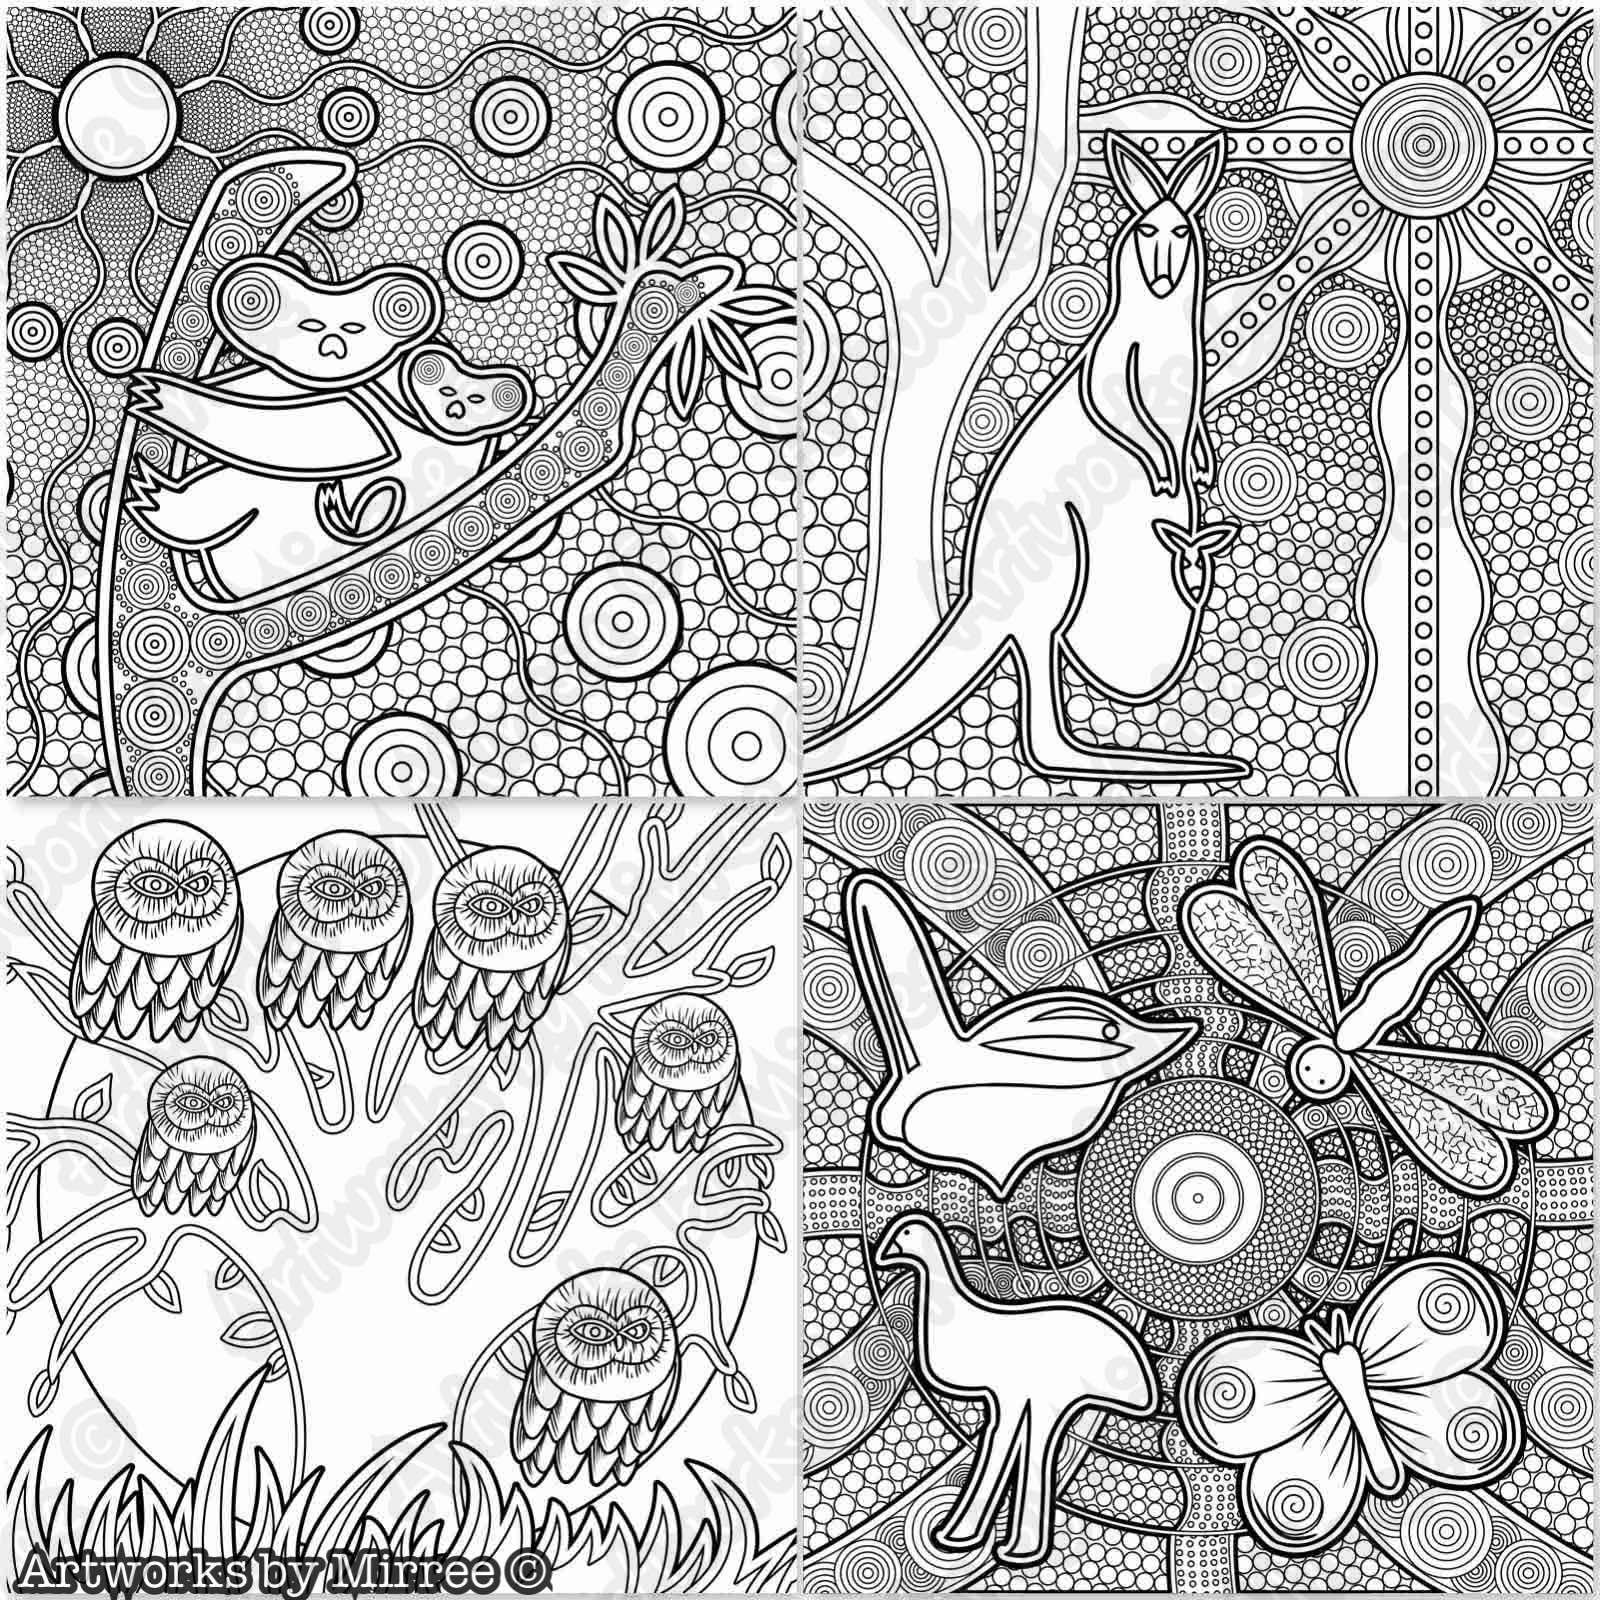 aboriginal dot painting colouring pages kangaroo aboriginal dot art coloring page aboriginal dot aboriginal painting colouring pages dot